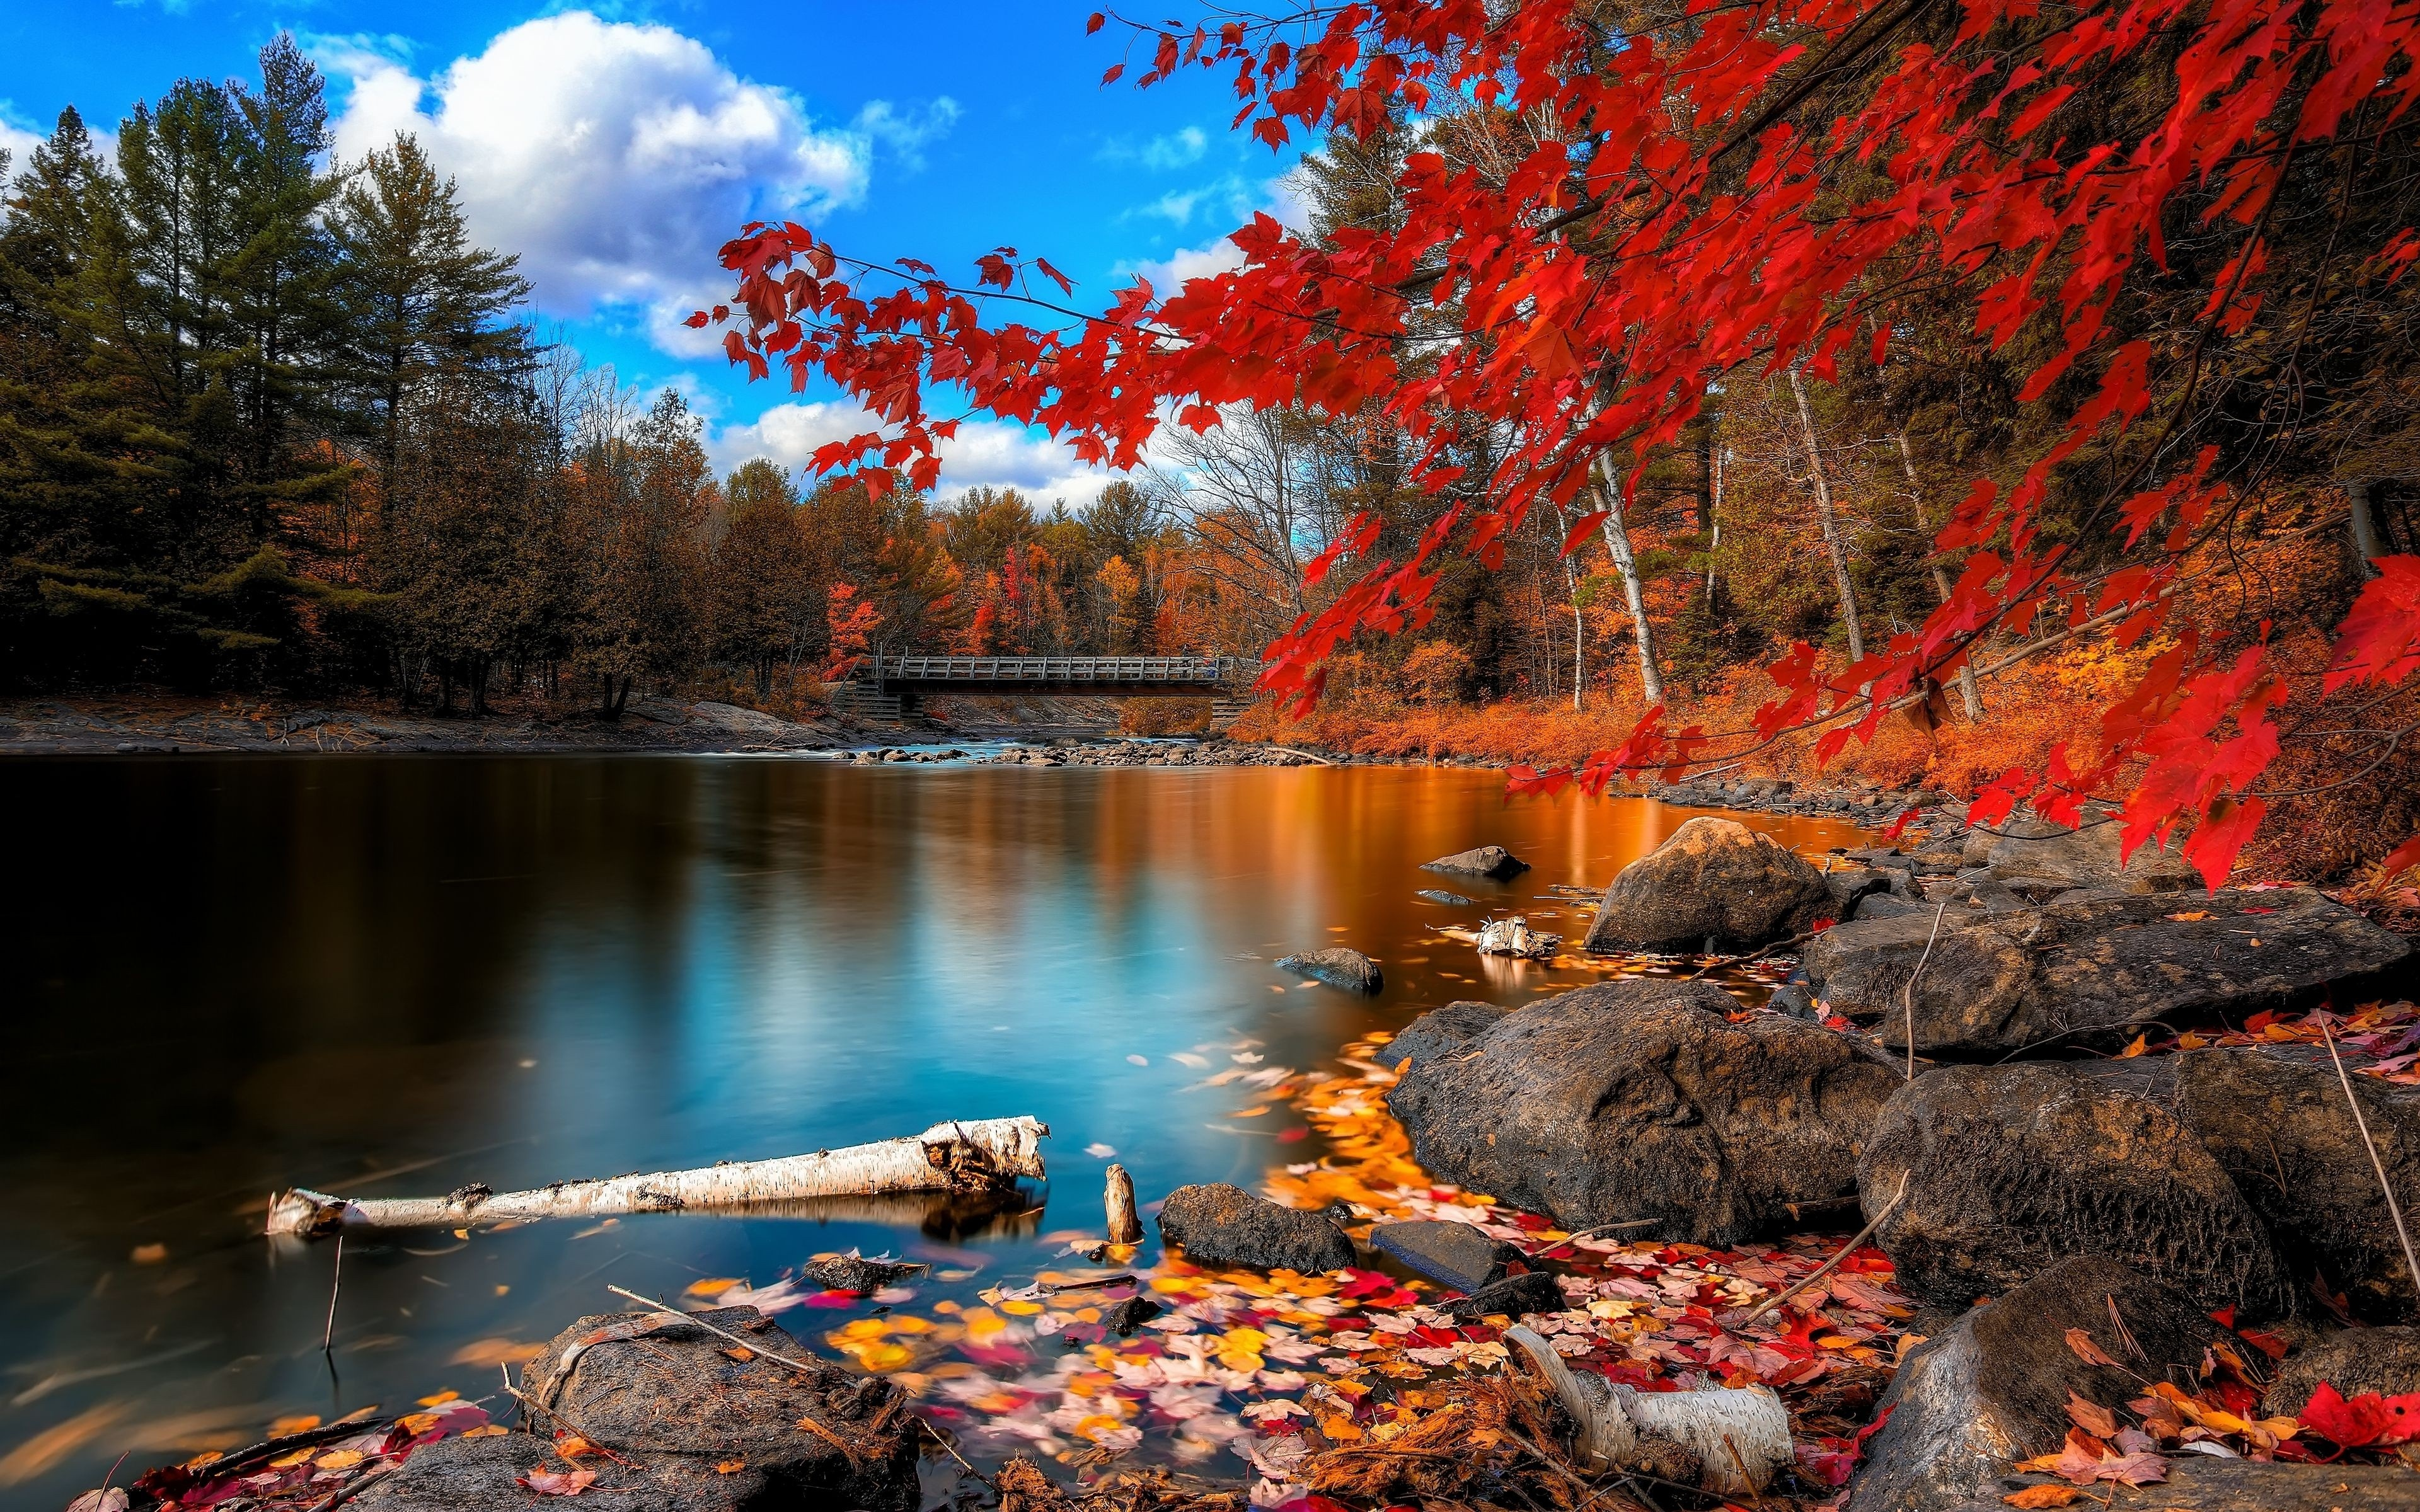 910 Fall HD Wallpapers   Backgrounds - Wallpaper Abyss